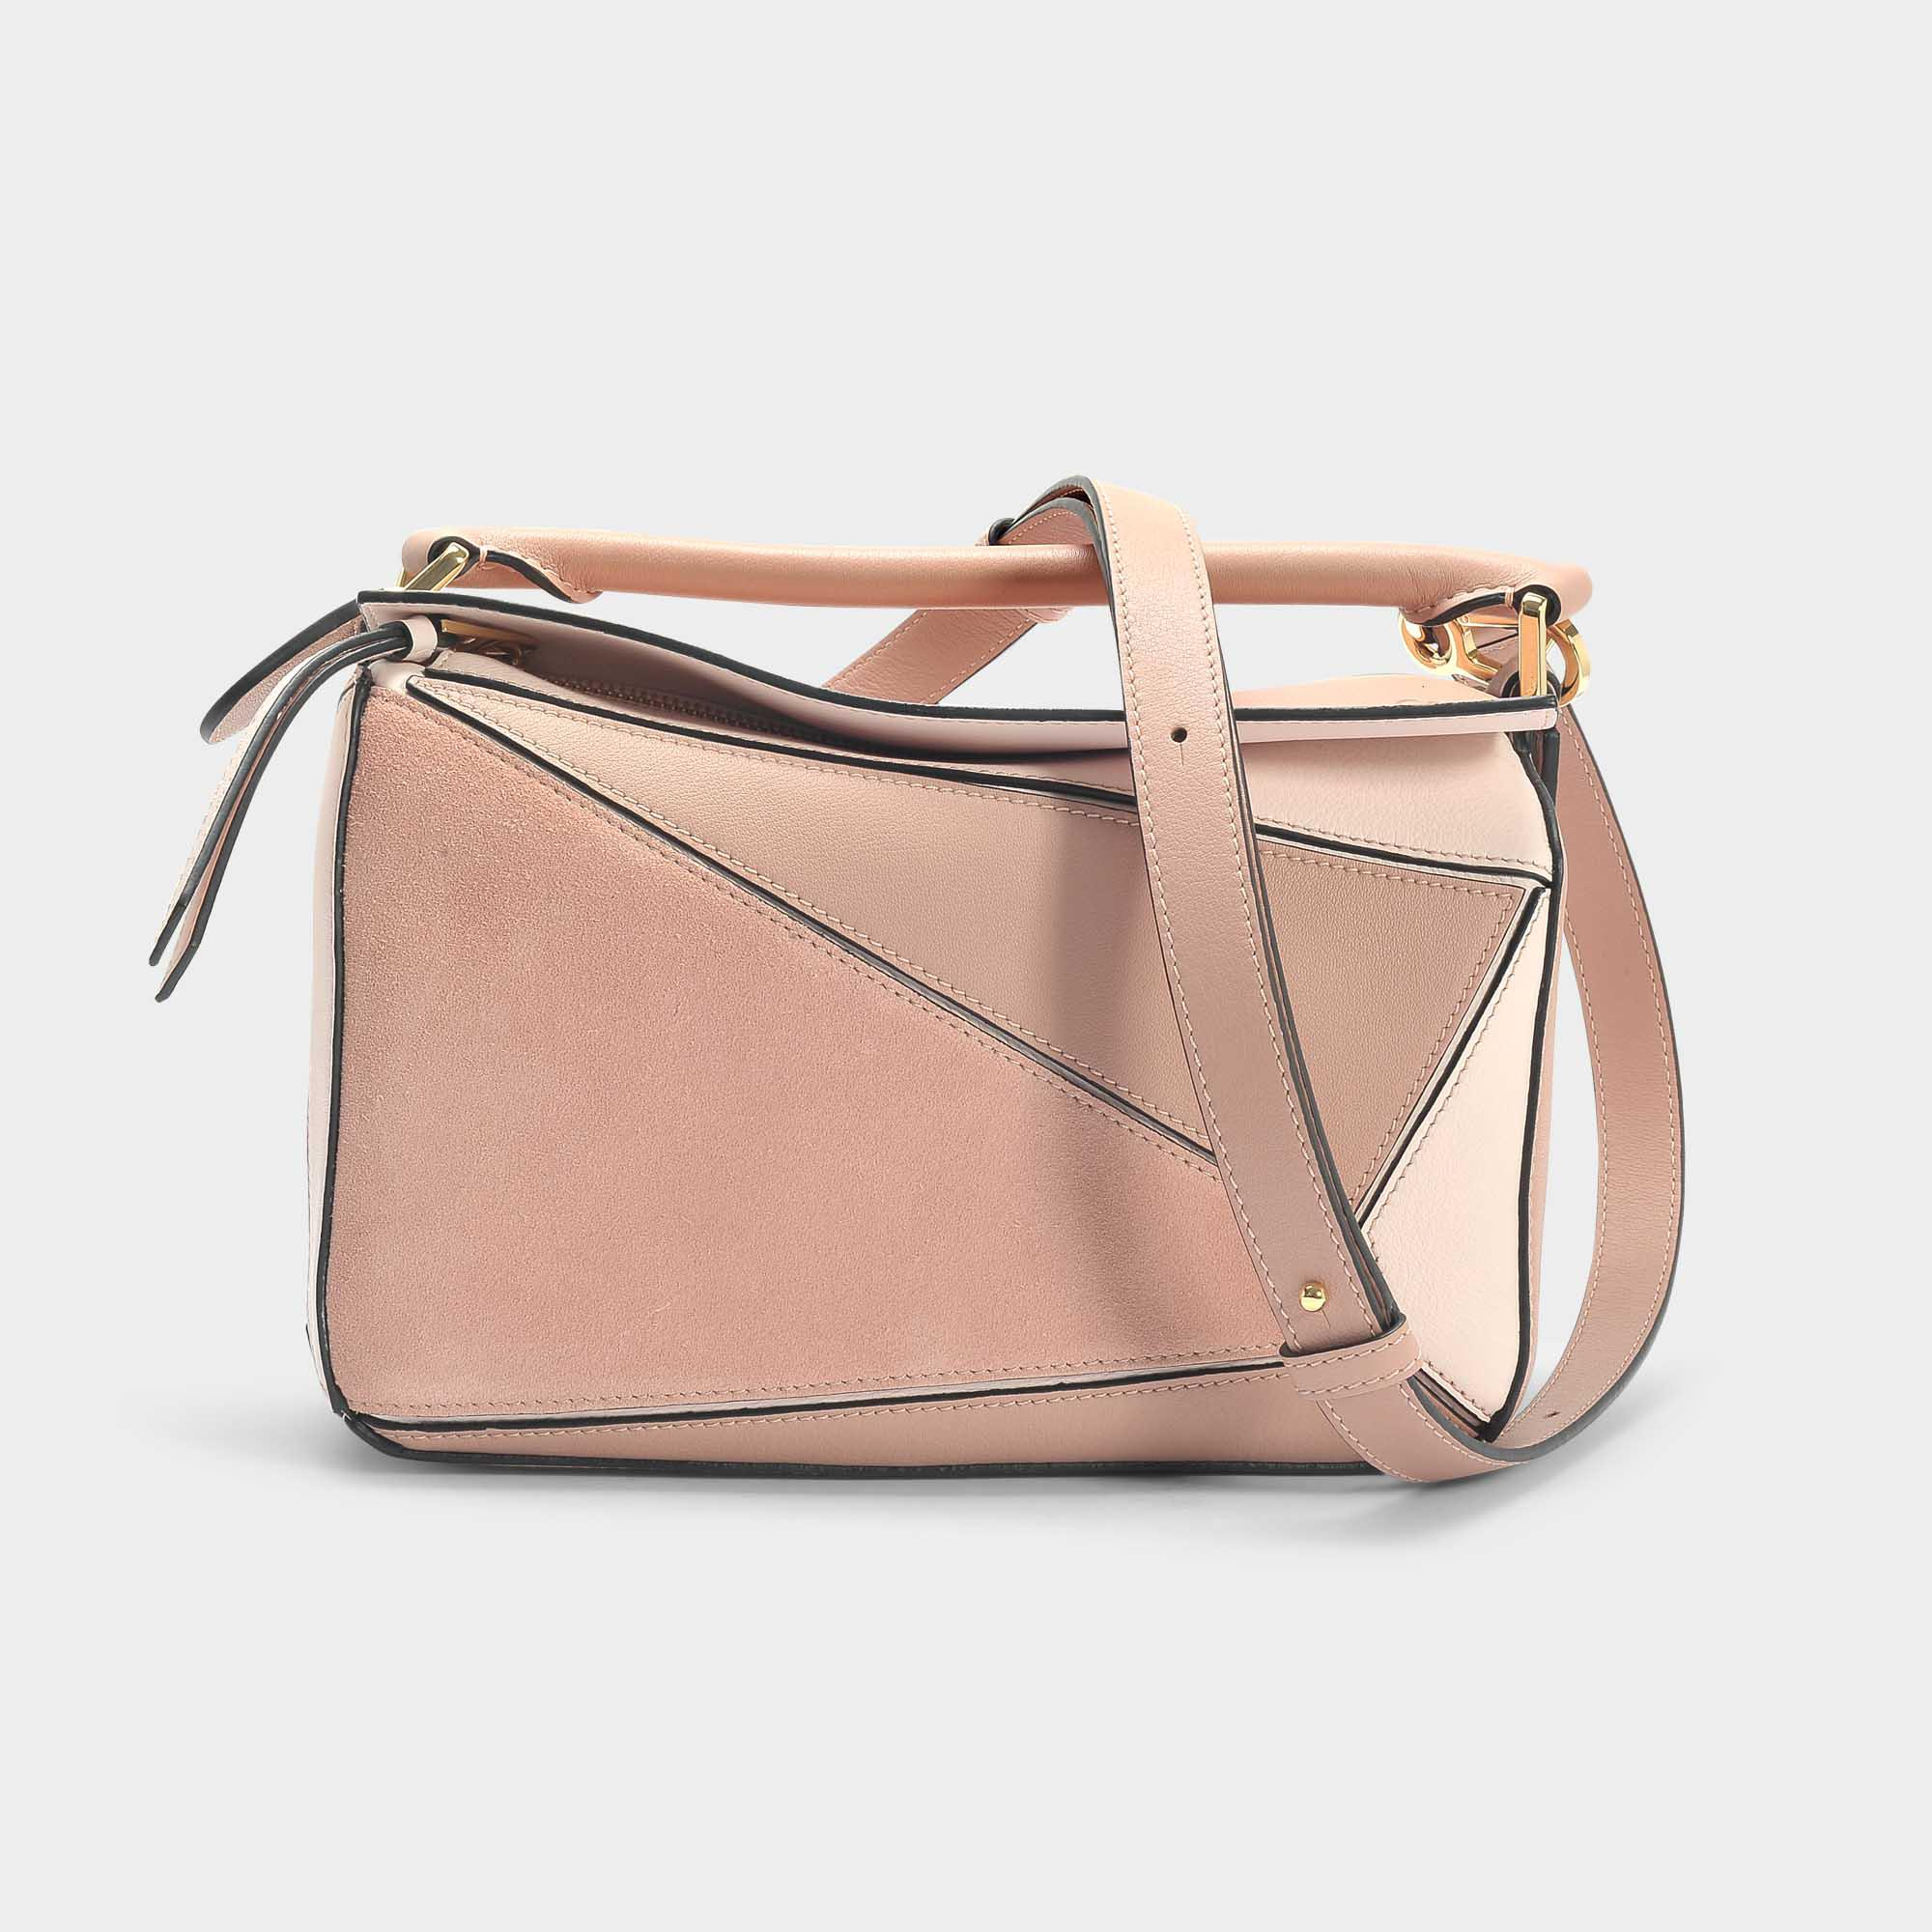 779e99c9ad0d Lyst - Loewe Puzzle Small Bag In Brown Calfskin in Pink